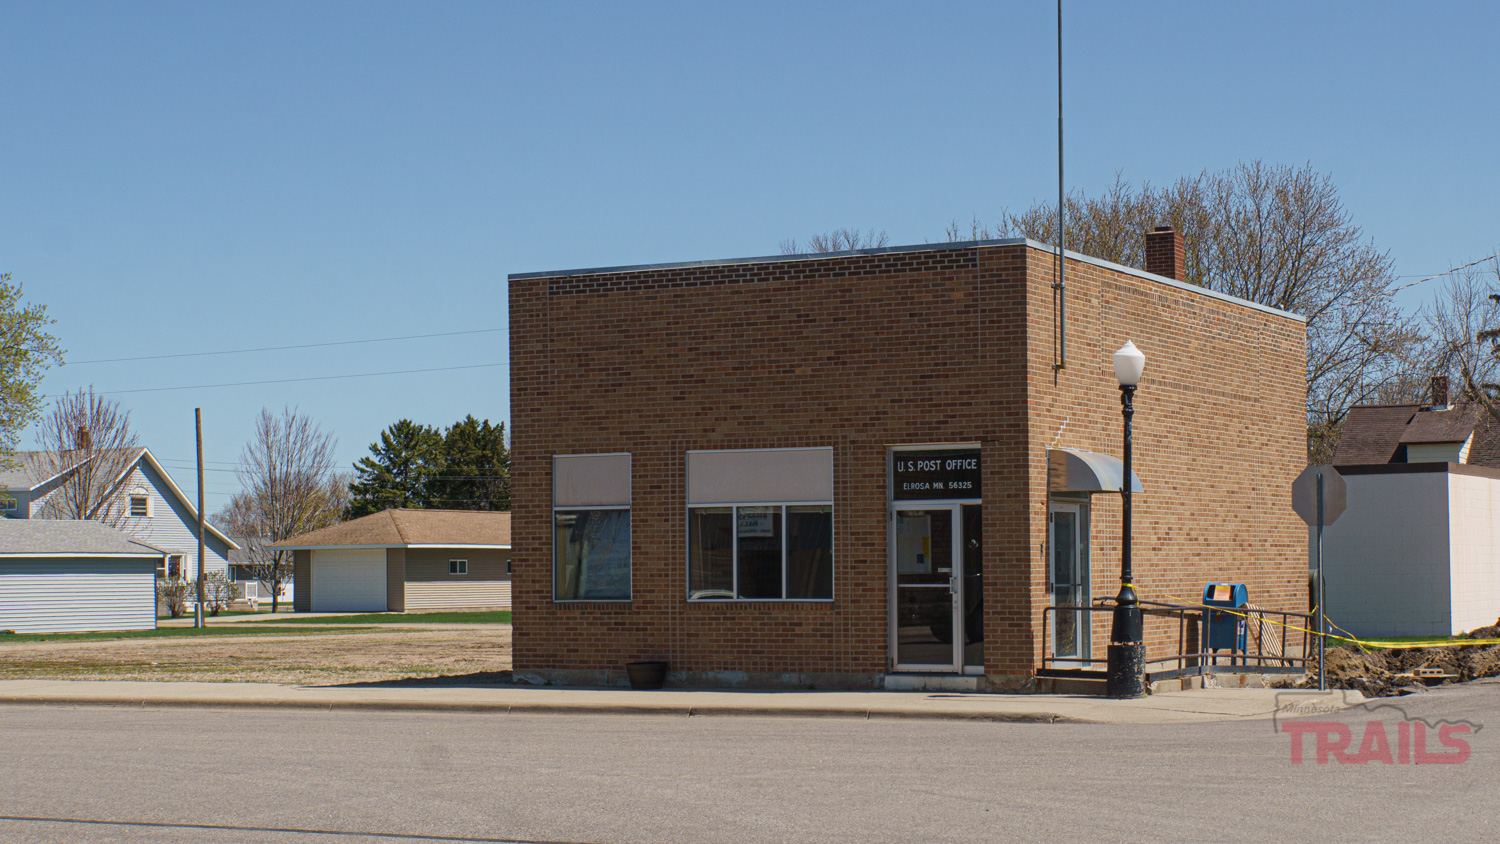 The Elrosa, MN Post Office